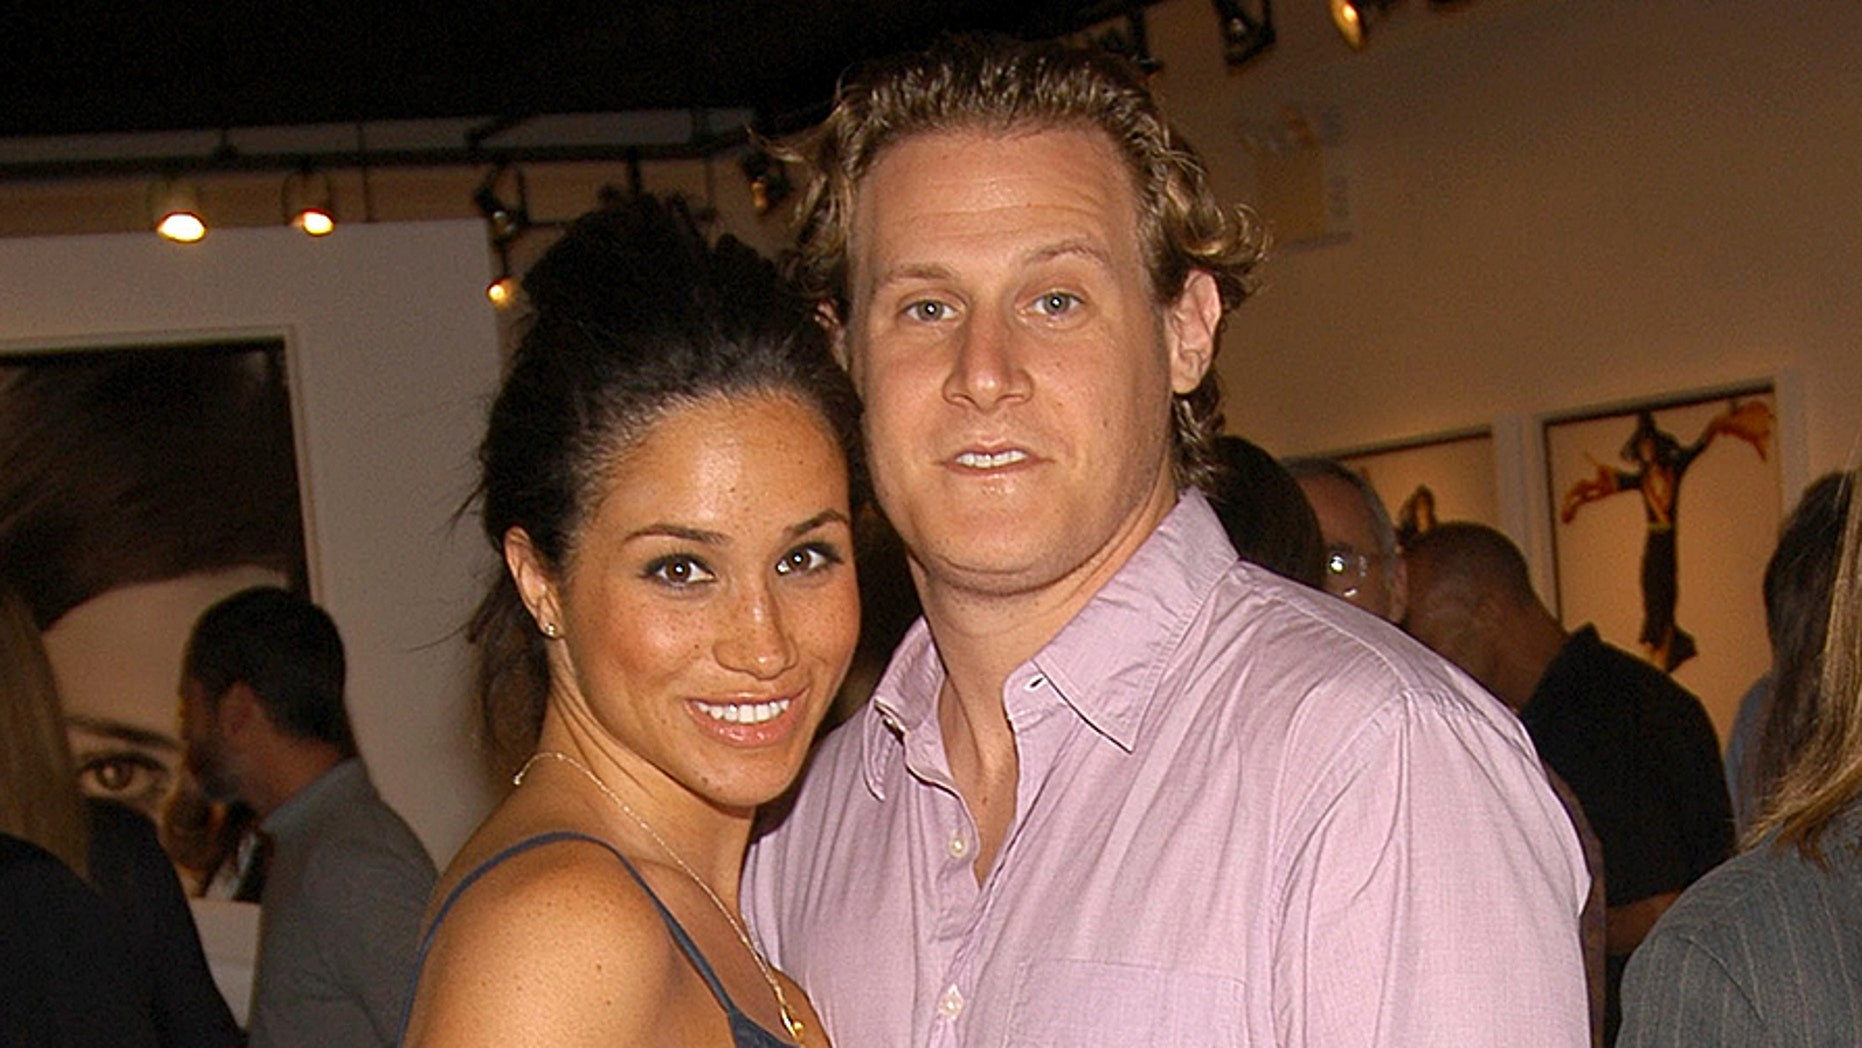 Markle and Engelson, here in a 2006 file photo, tied the knot on Sept. 10, 2011 in Jamaica, where they had a casual wedding in front of 102 guests.